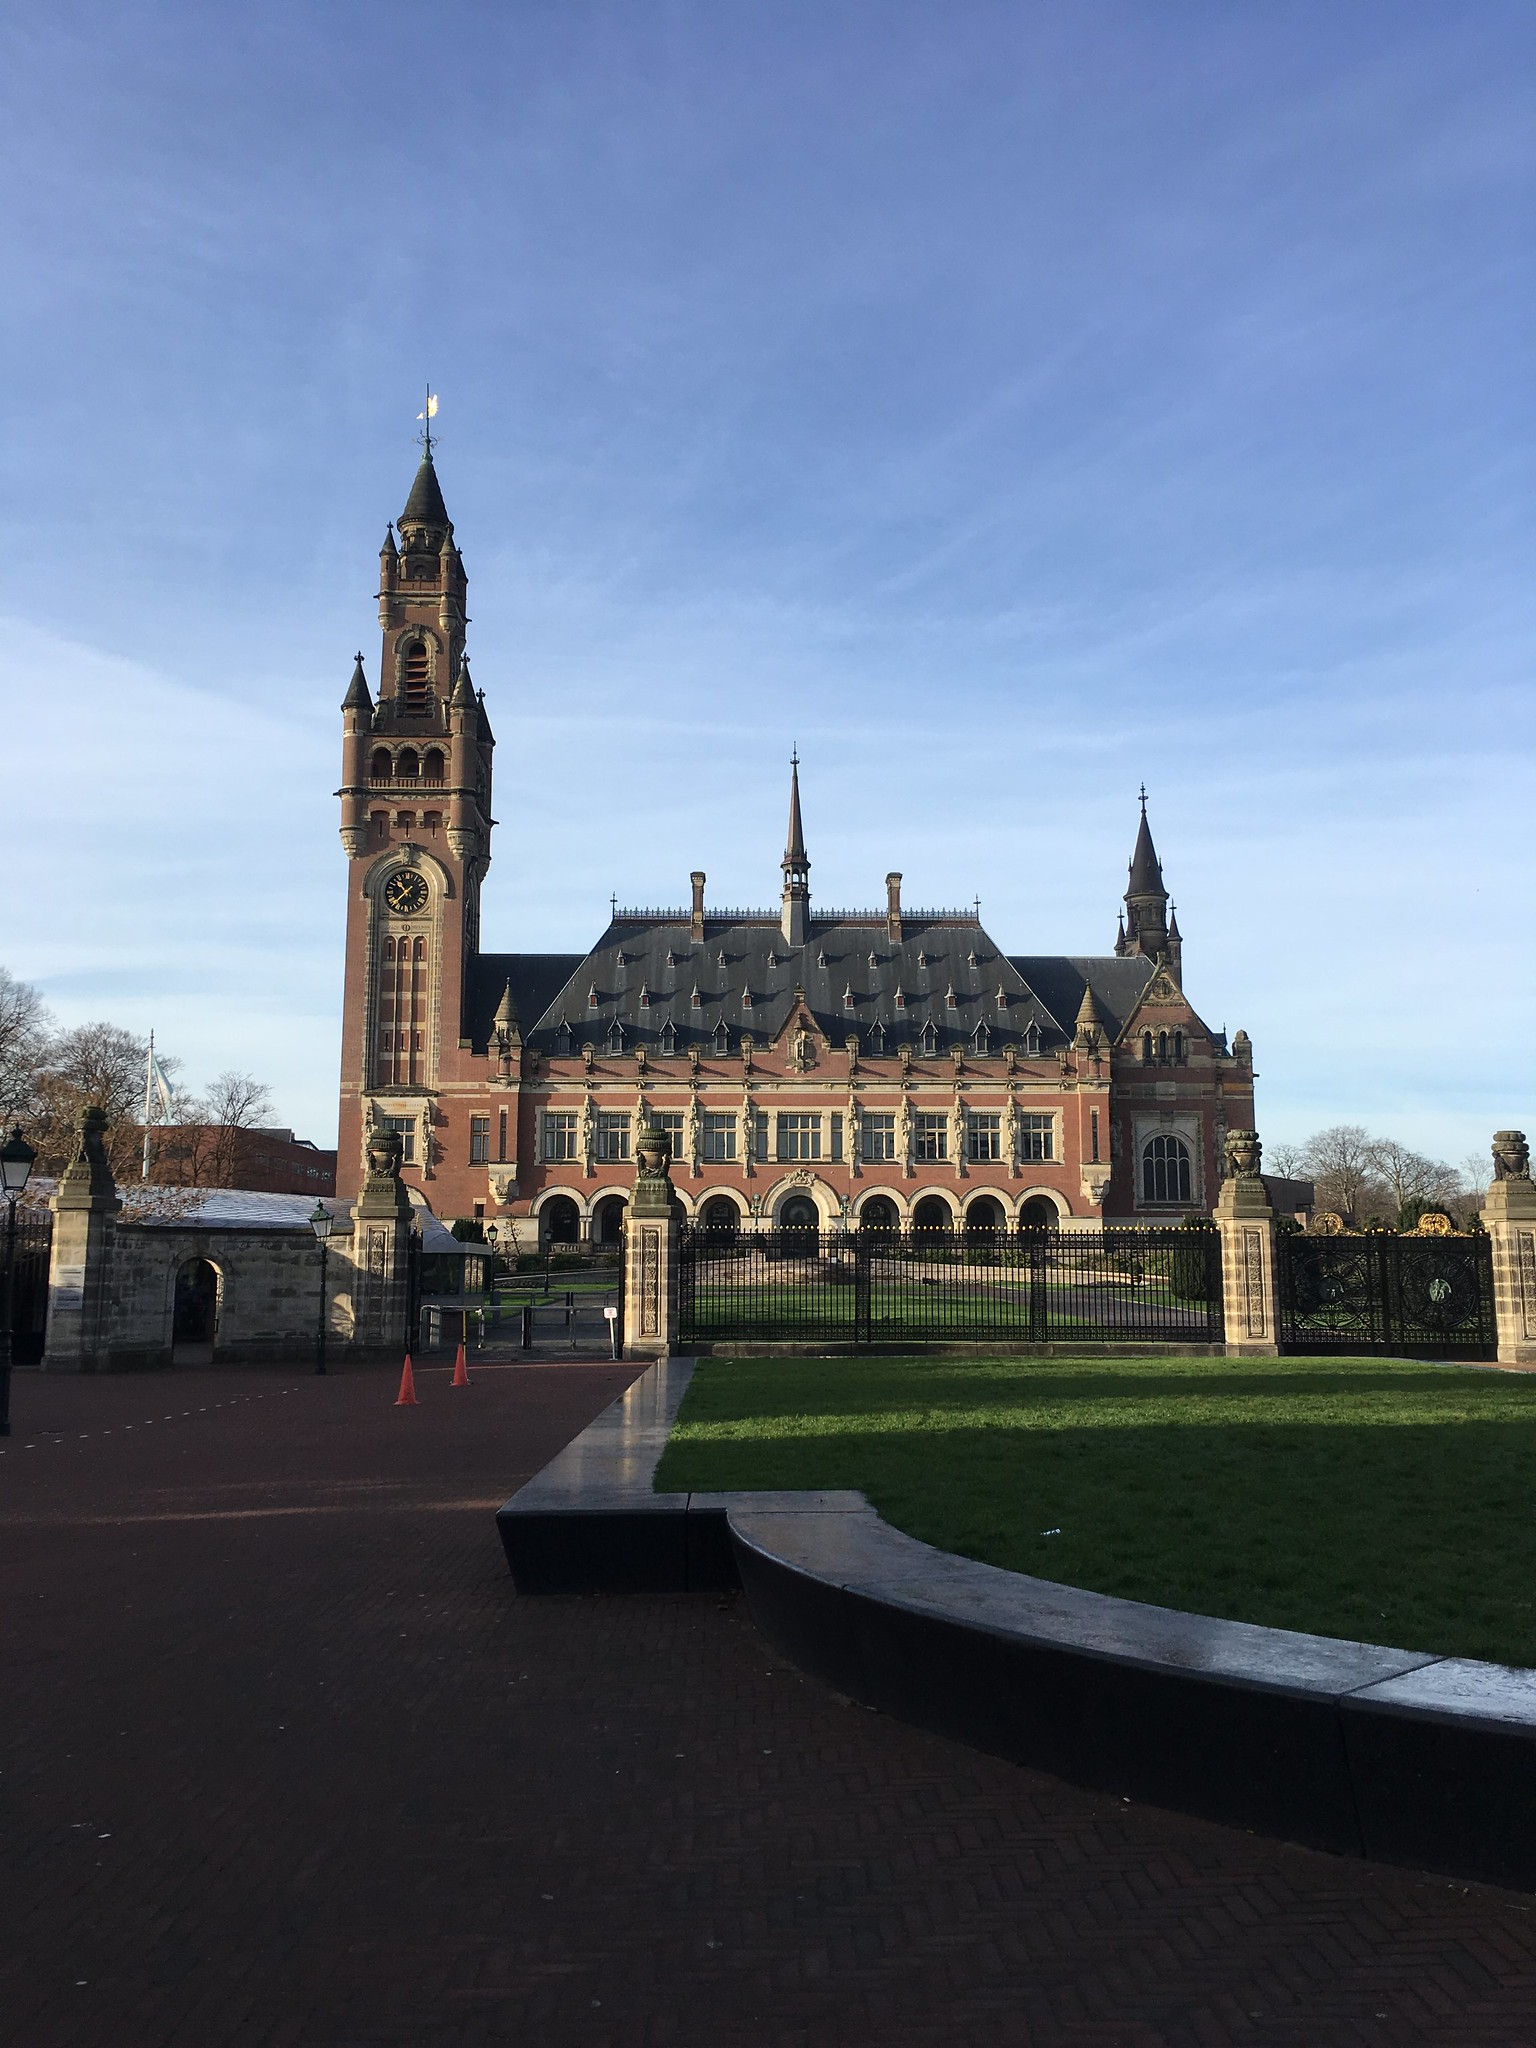 From hypothetical to The Hague: A semester abroad in the Netherlands